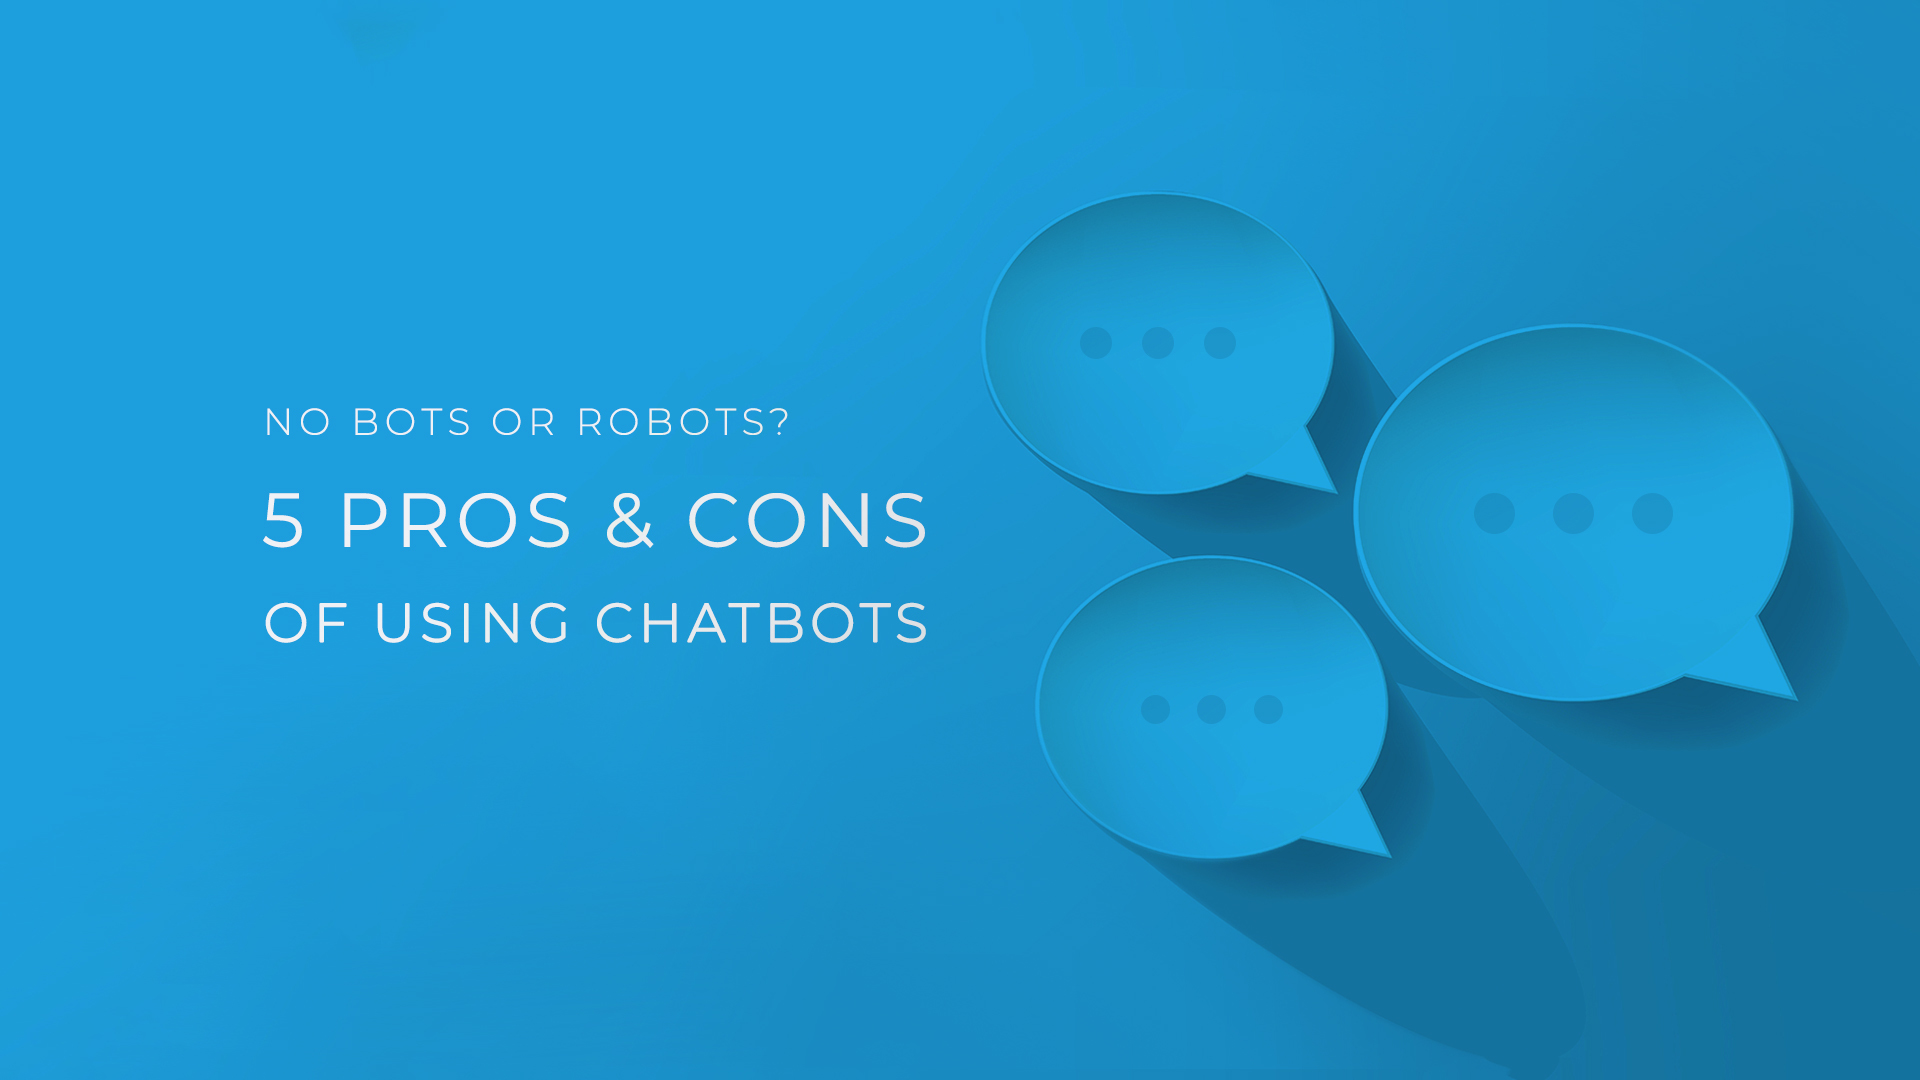 No Bot or Robots? 5 Pros & Cons of Using Chatbots